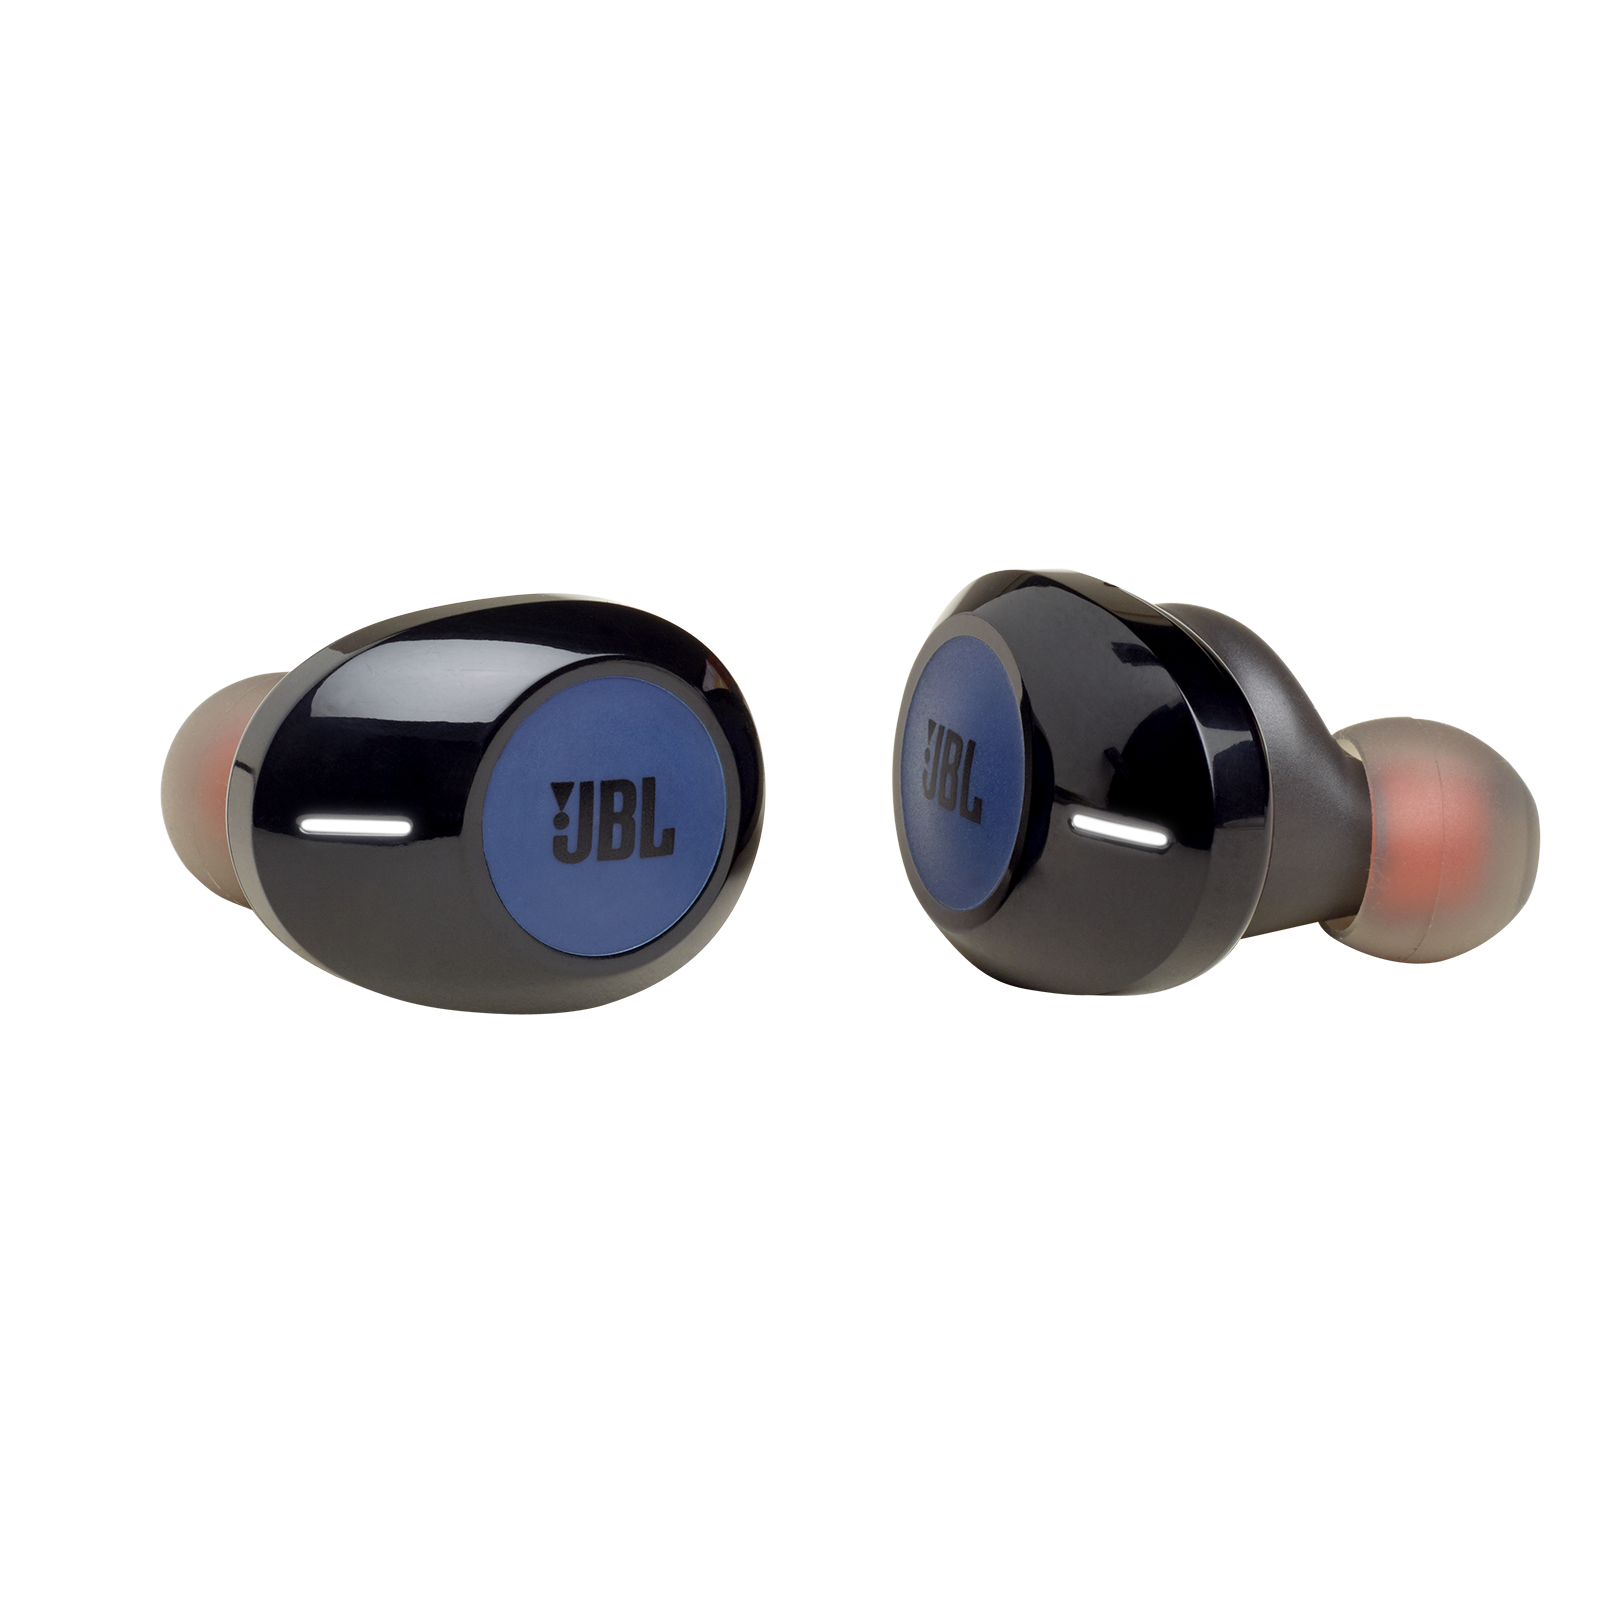 JBL TUNE 120TWS - Blue - Truly wireless in-ear headphones. - Detailshot 2